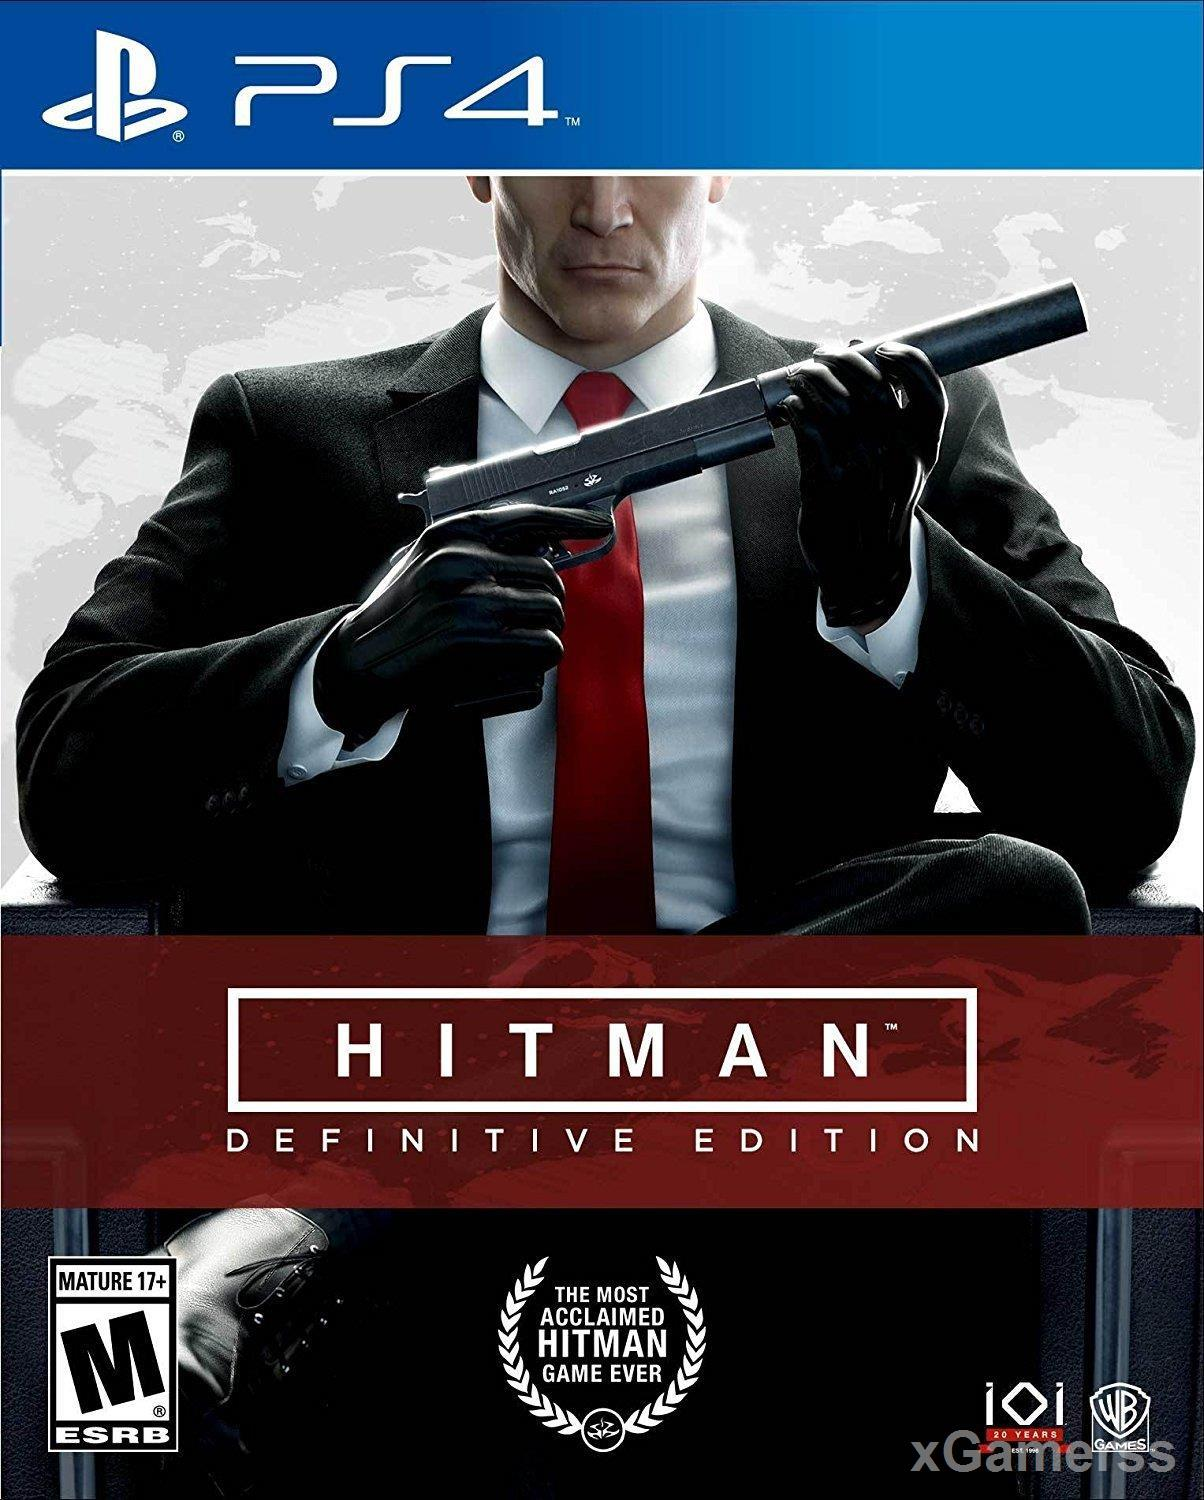 Hitman - A third person stealth game